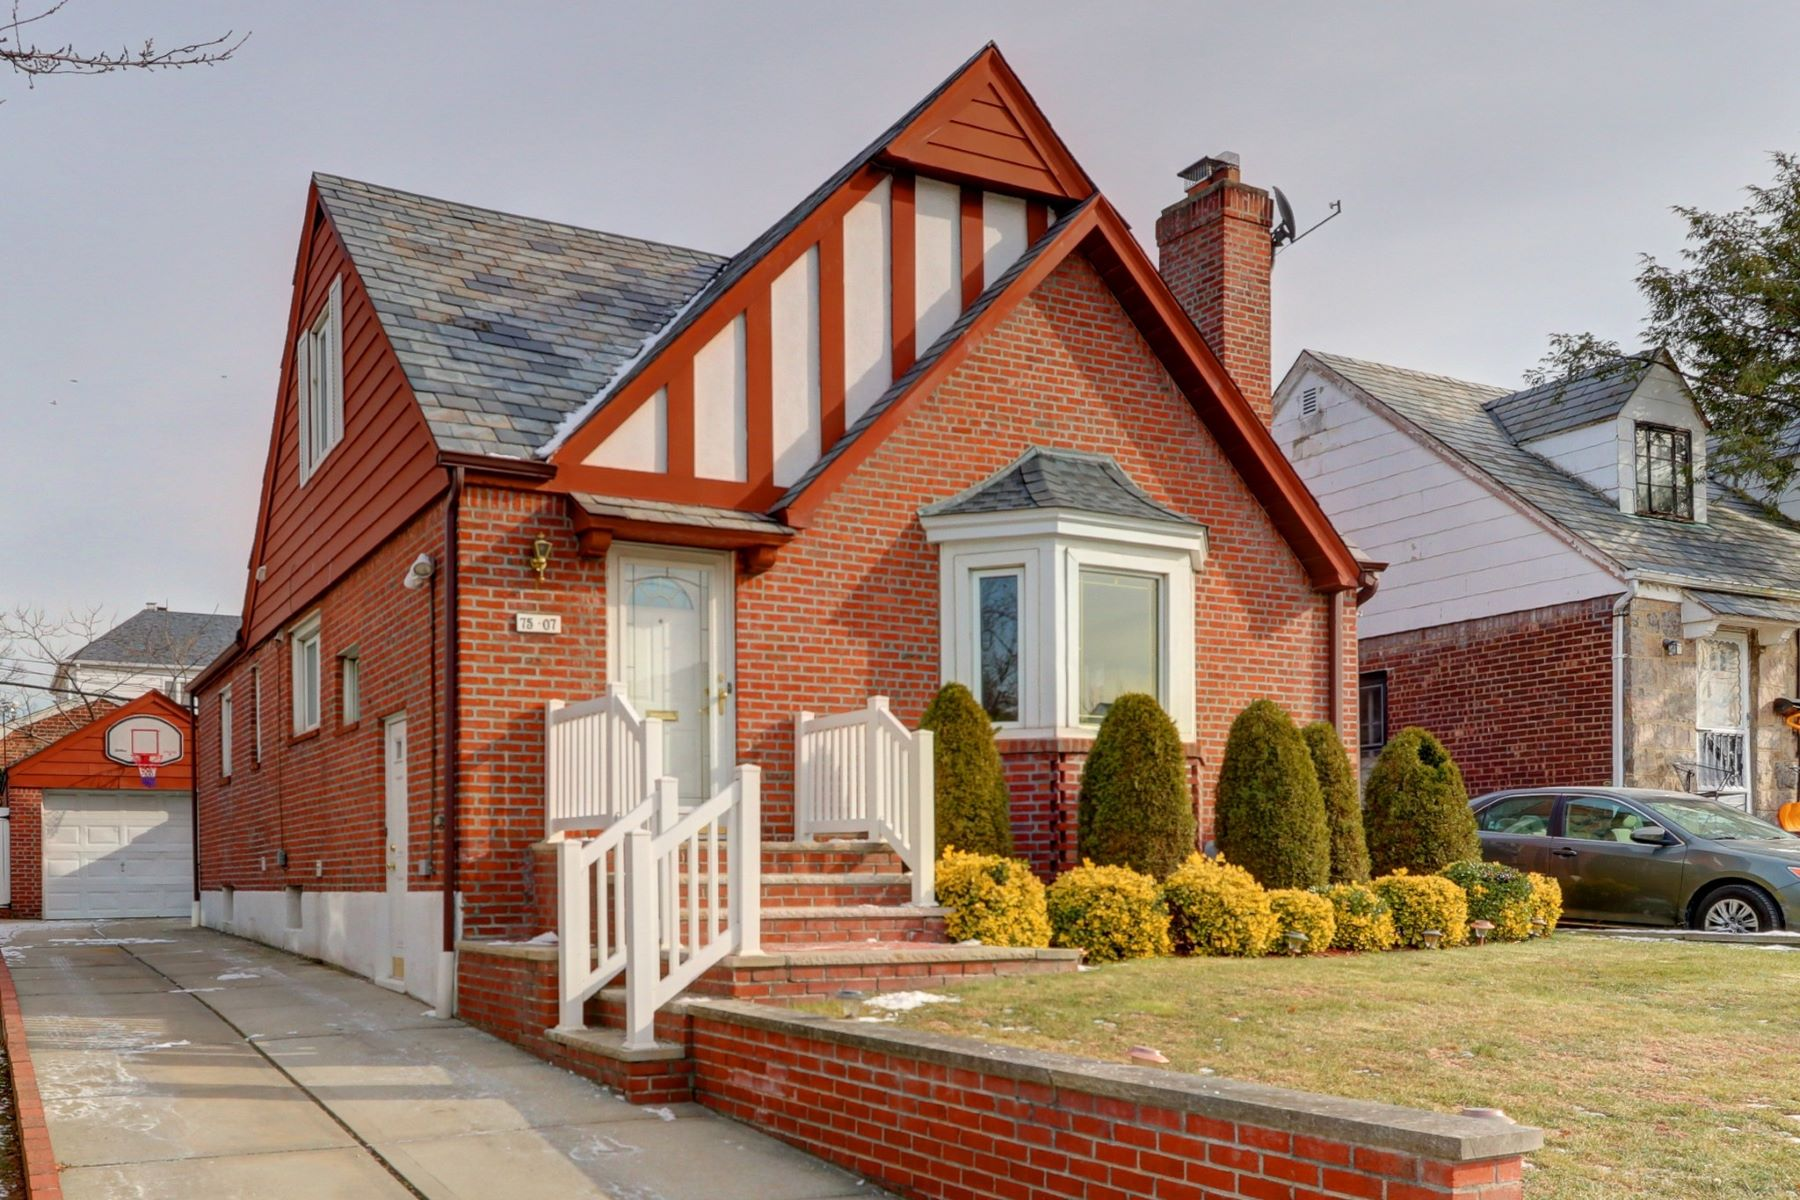 Single Family Home for Sale at 75-07 189th St , Fresh Meadows, NY 11366 75-07 189th St, Fresh Meadows, New York, 11366 United States